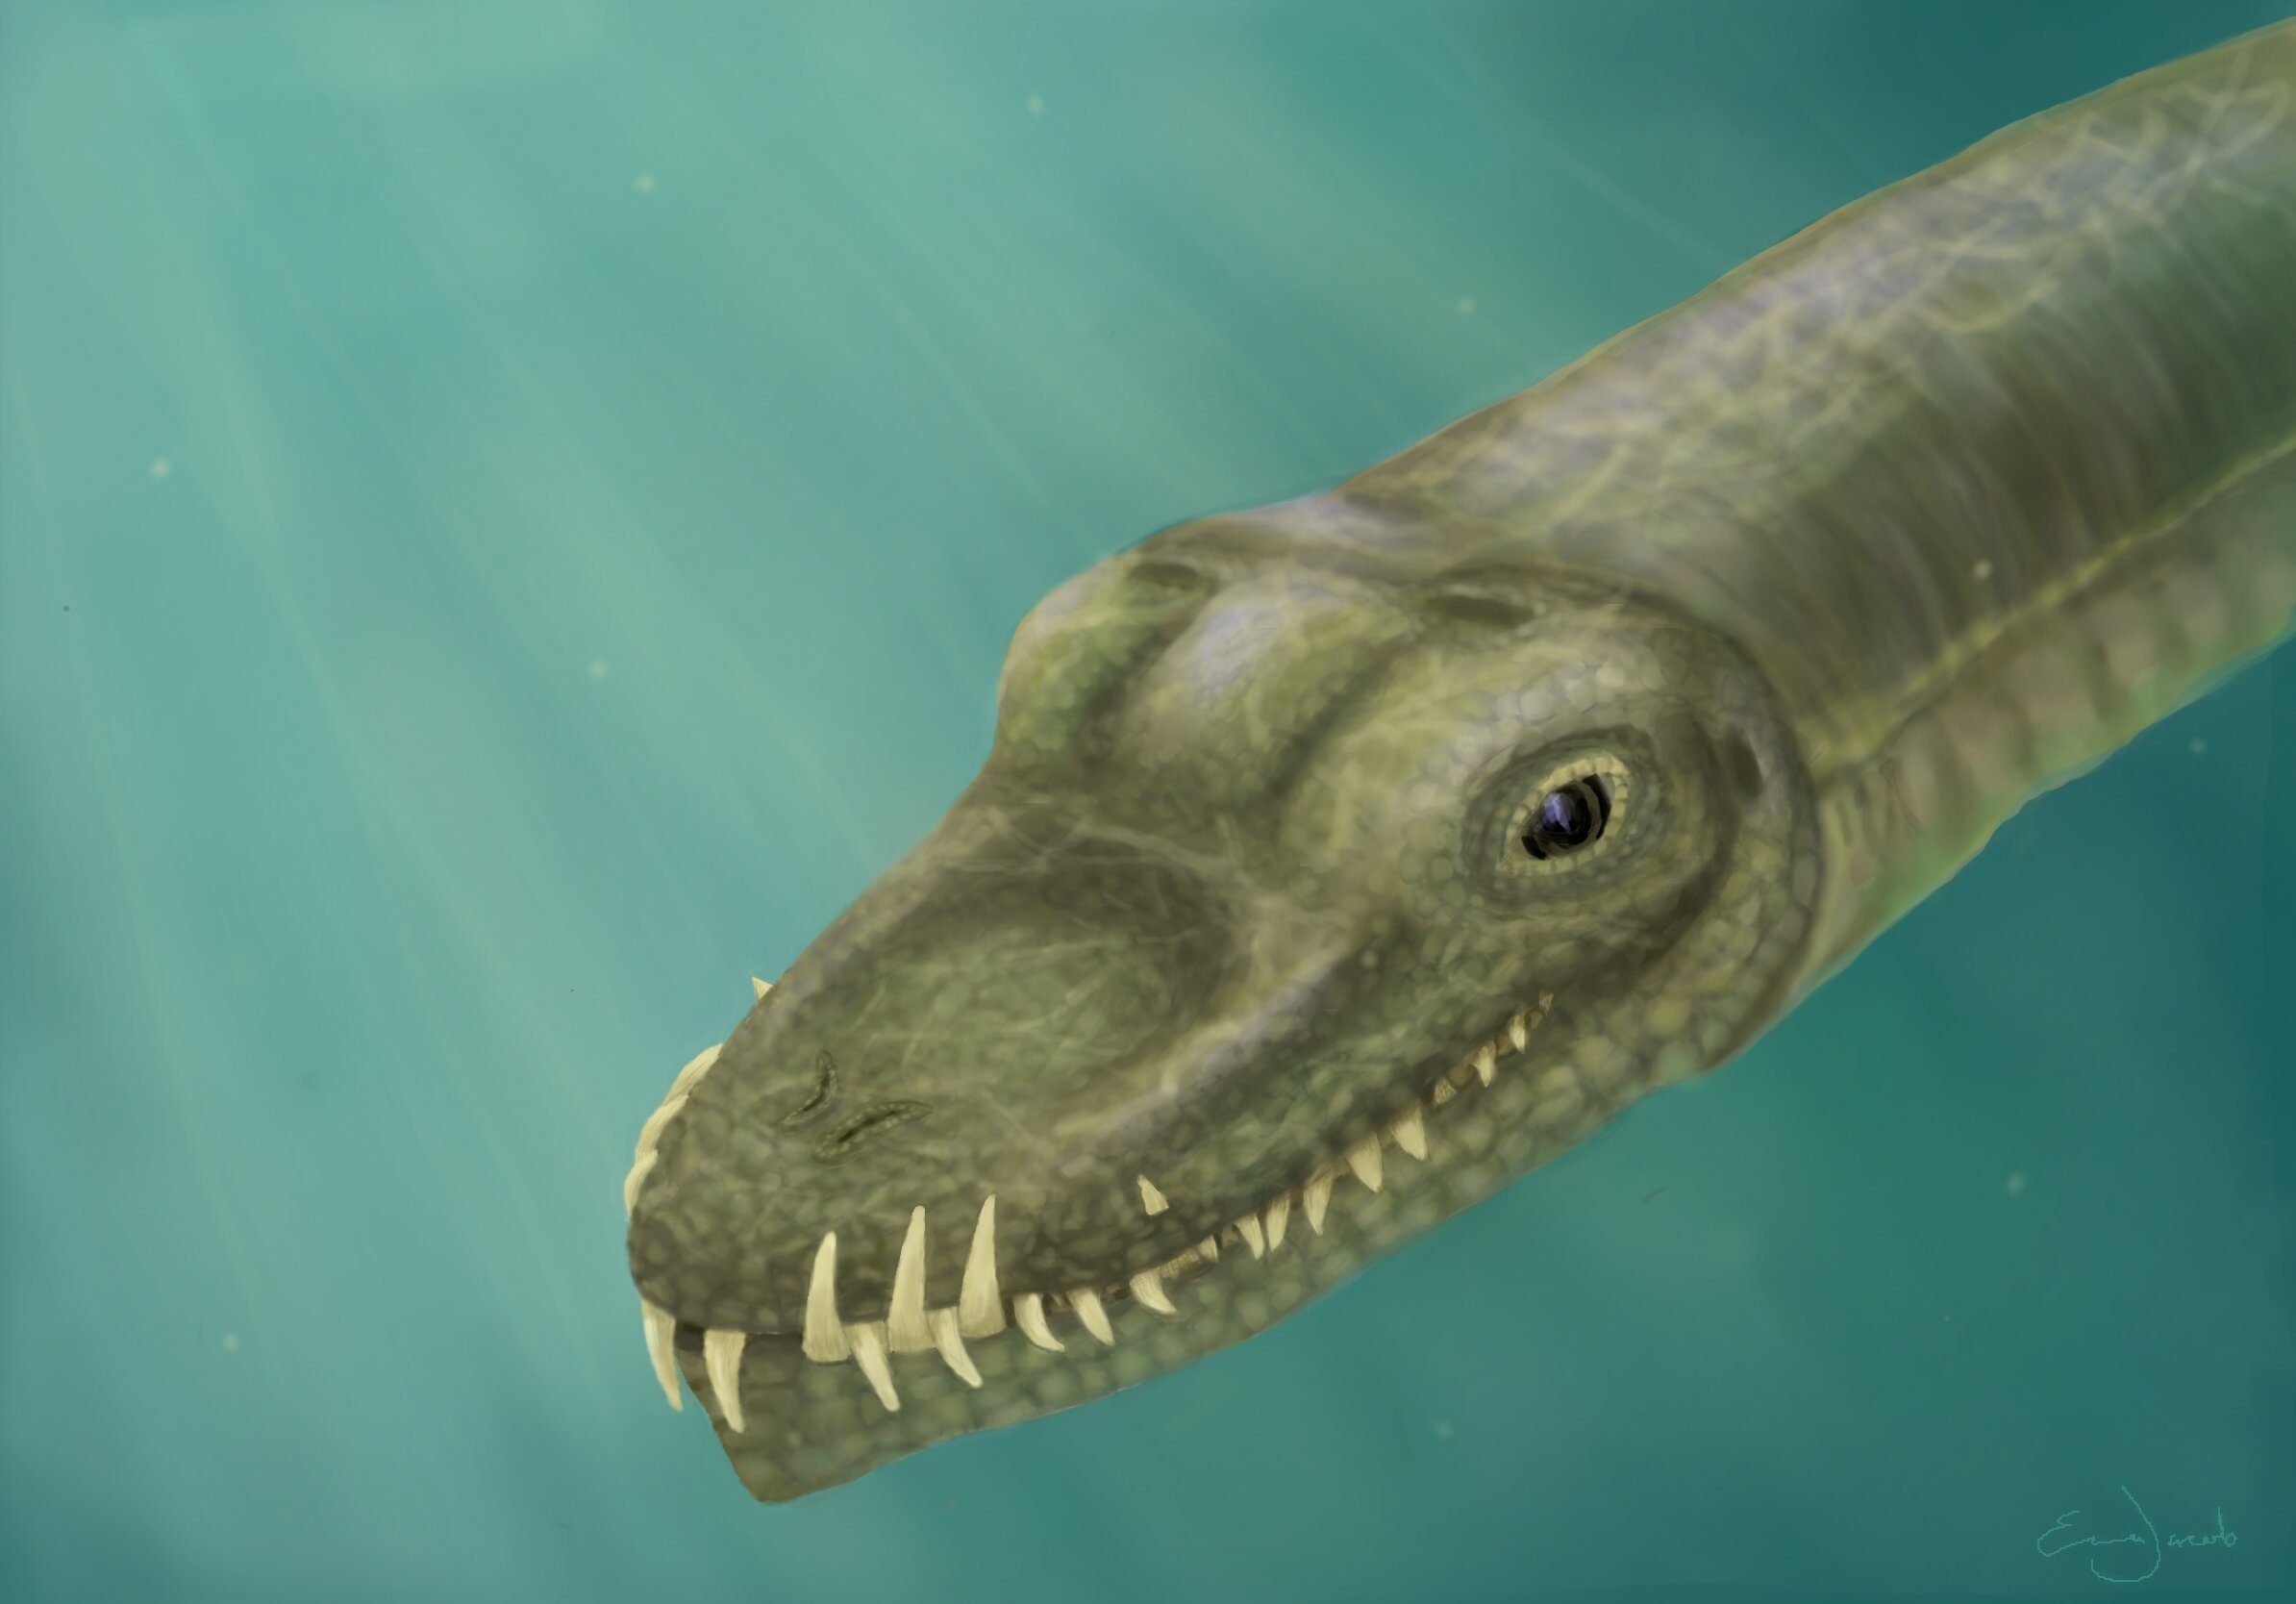 Fossil mystery solved: Super-long-necked reptiles lived in the ocean, not on land